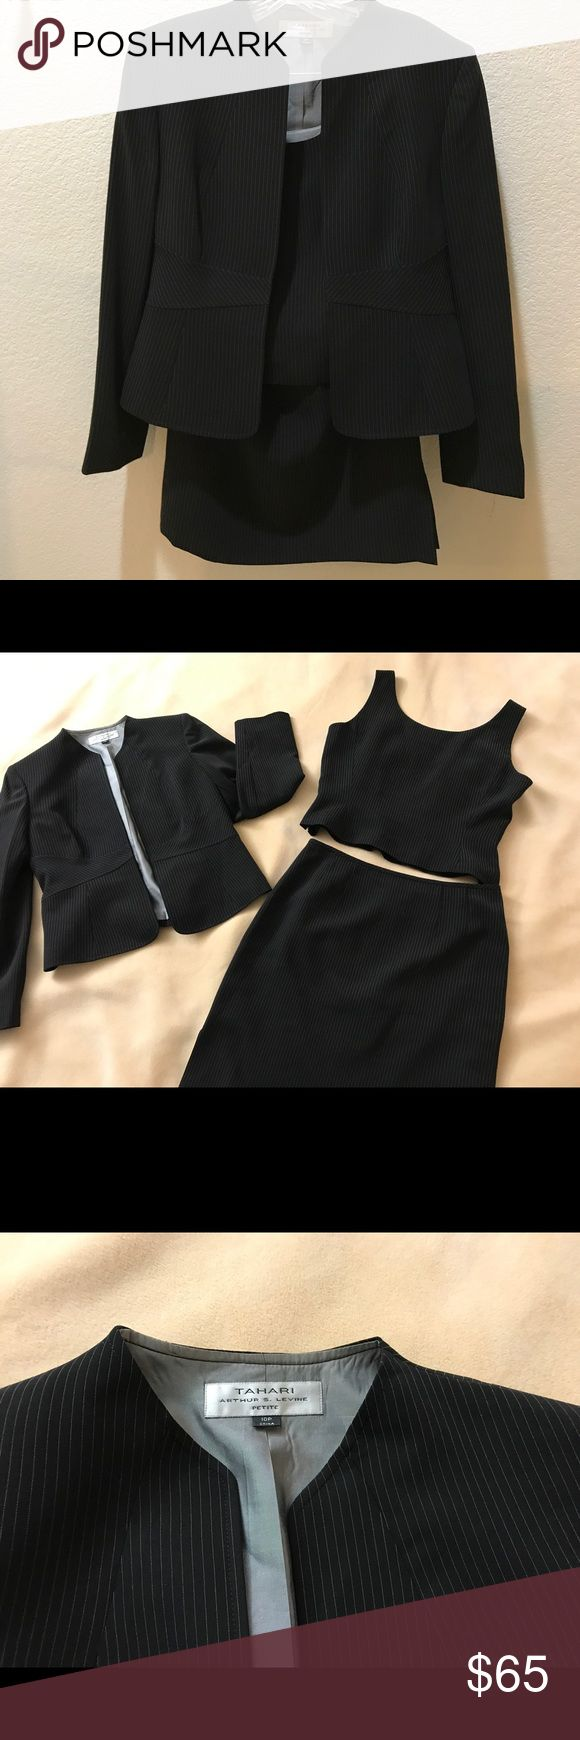 3-piece Tahari Ladies Suit. Handsome 3-piece suit with skirt. Black pinstriped. Great look for work. Never worn. Excellent condition. Elie Tahari Other